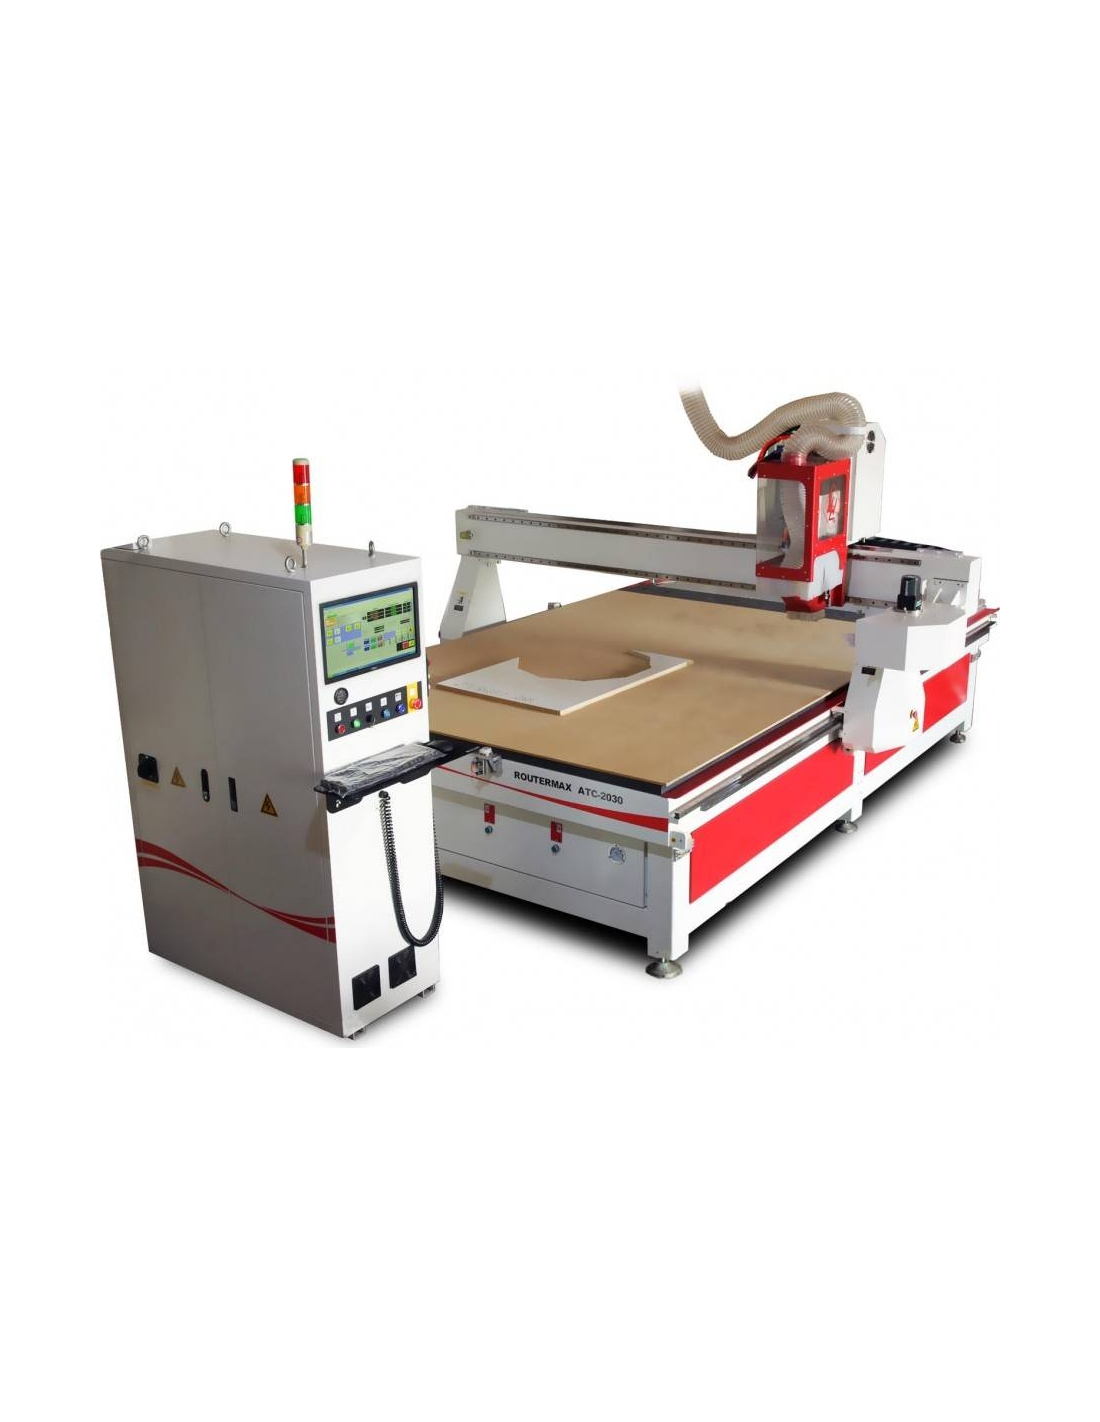 Router CNC Winter RouterMax-ATC 1325 Deluxe